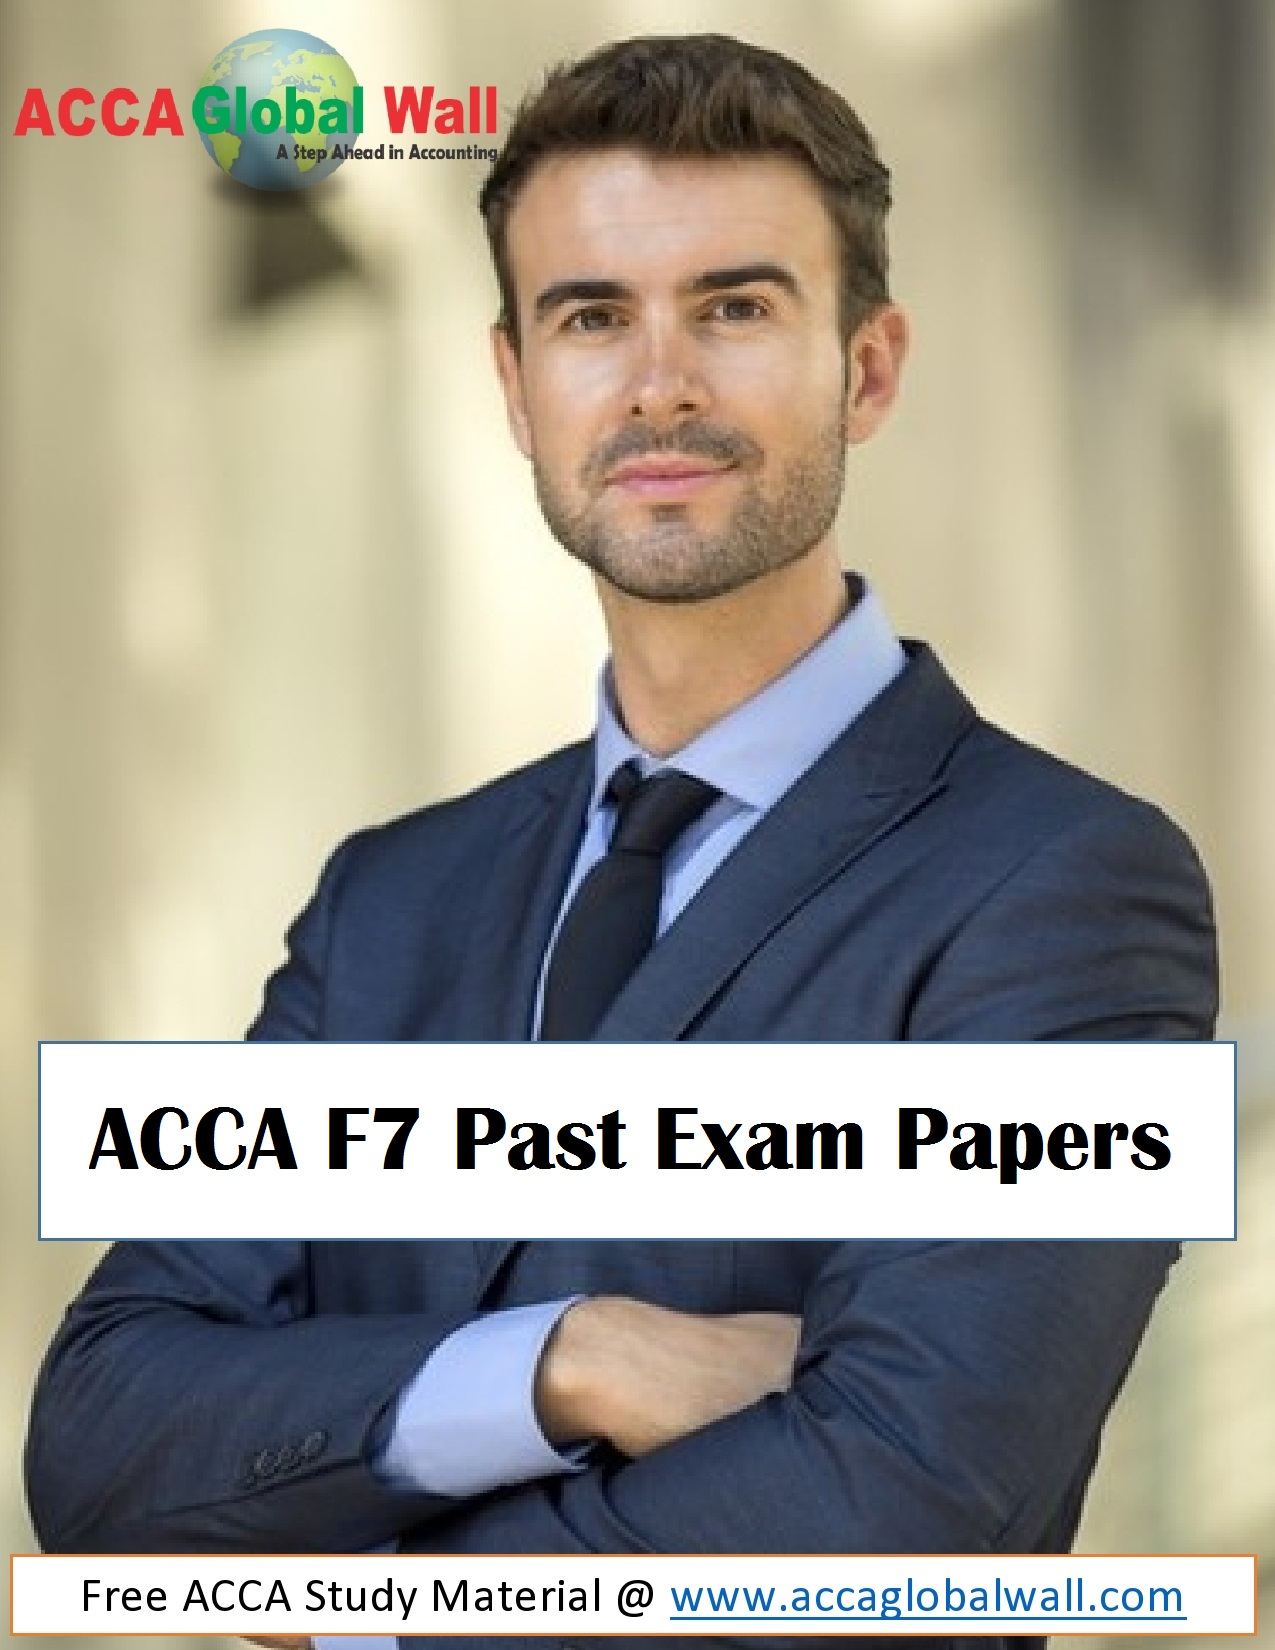 ACCA F7 Past Exam Papers